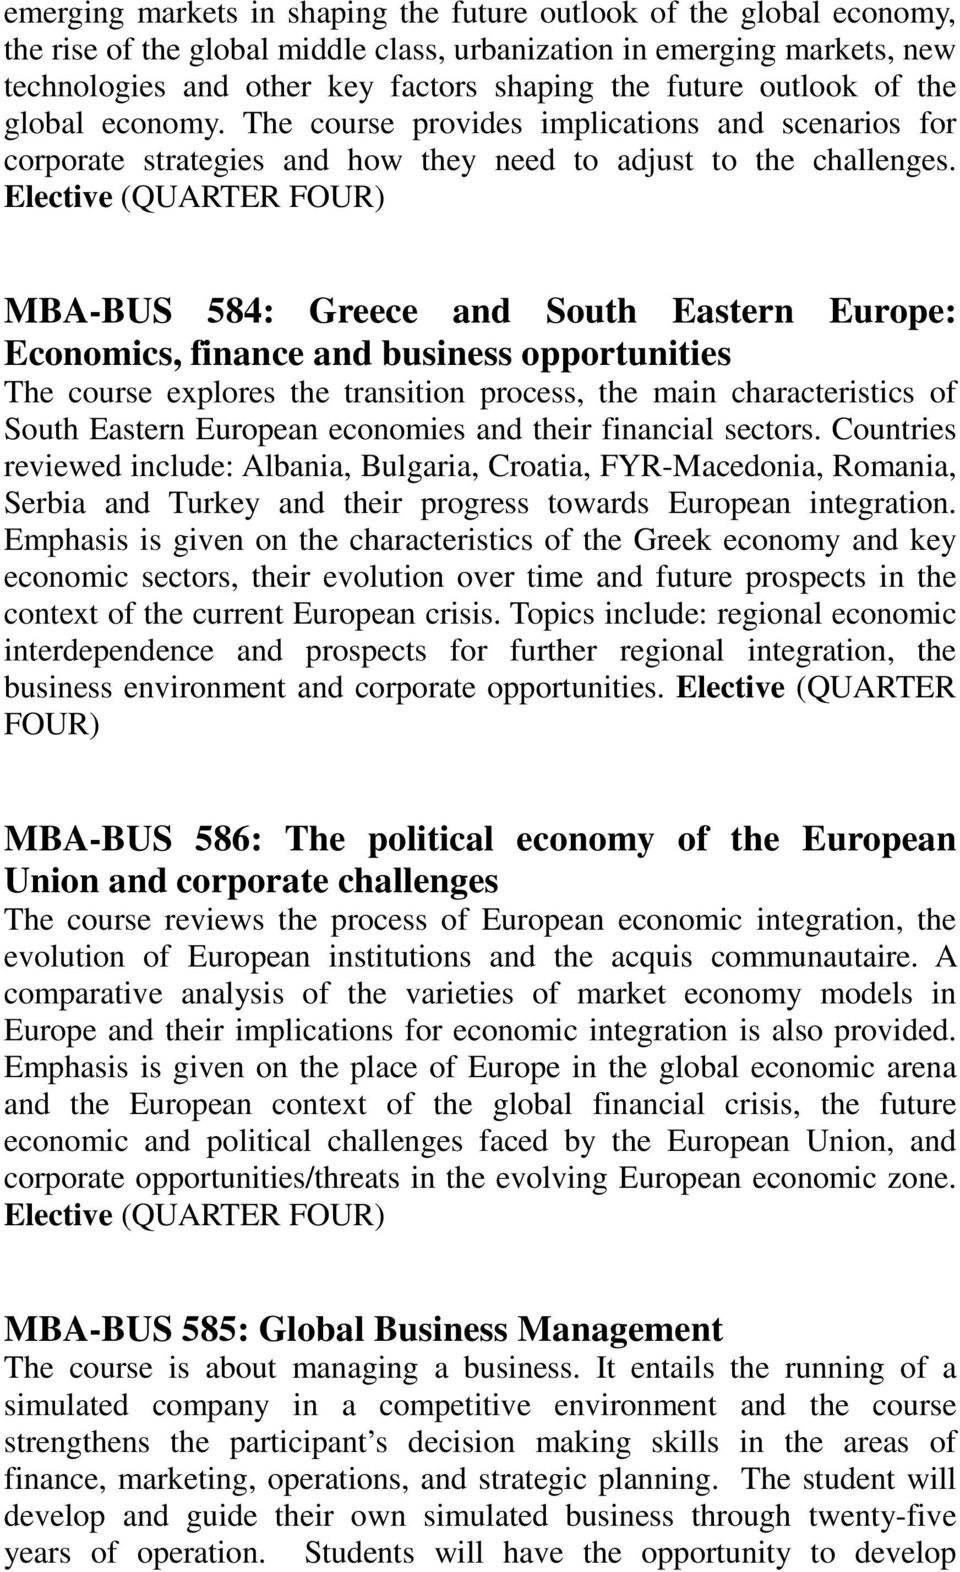 Elective (QUARTER FOUR) MBA-BUS 584: Greece and South Eastern Europe: Economics, finance and business opportunities The course explores the transition process, the main characteristics of South